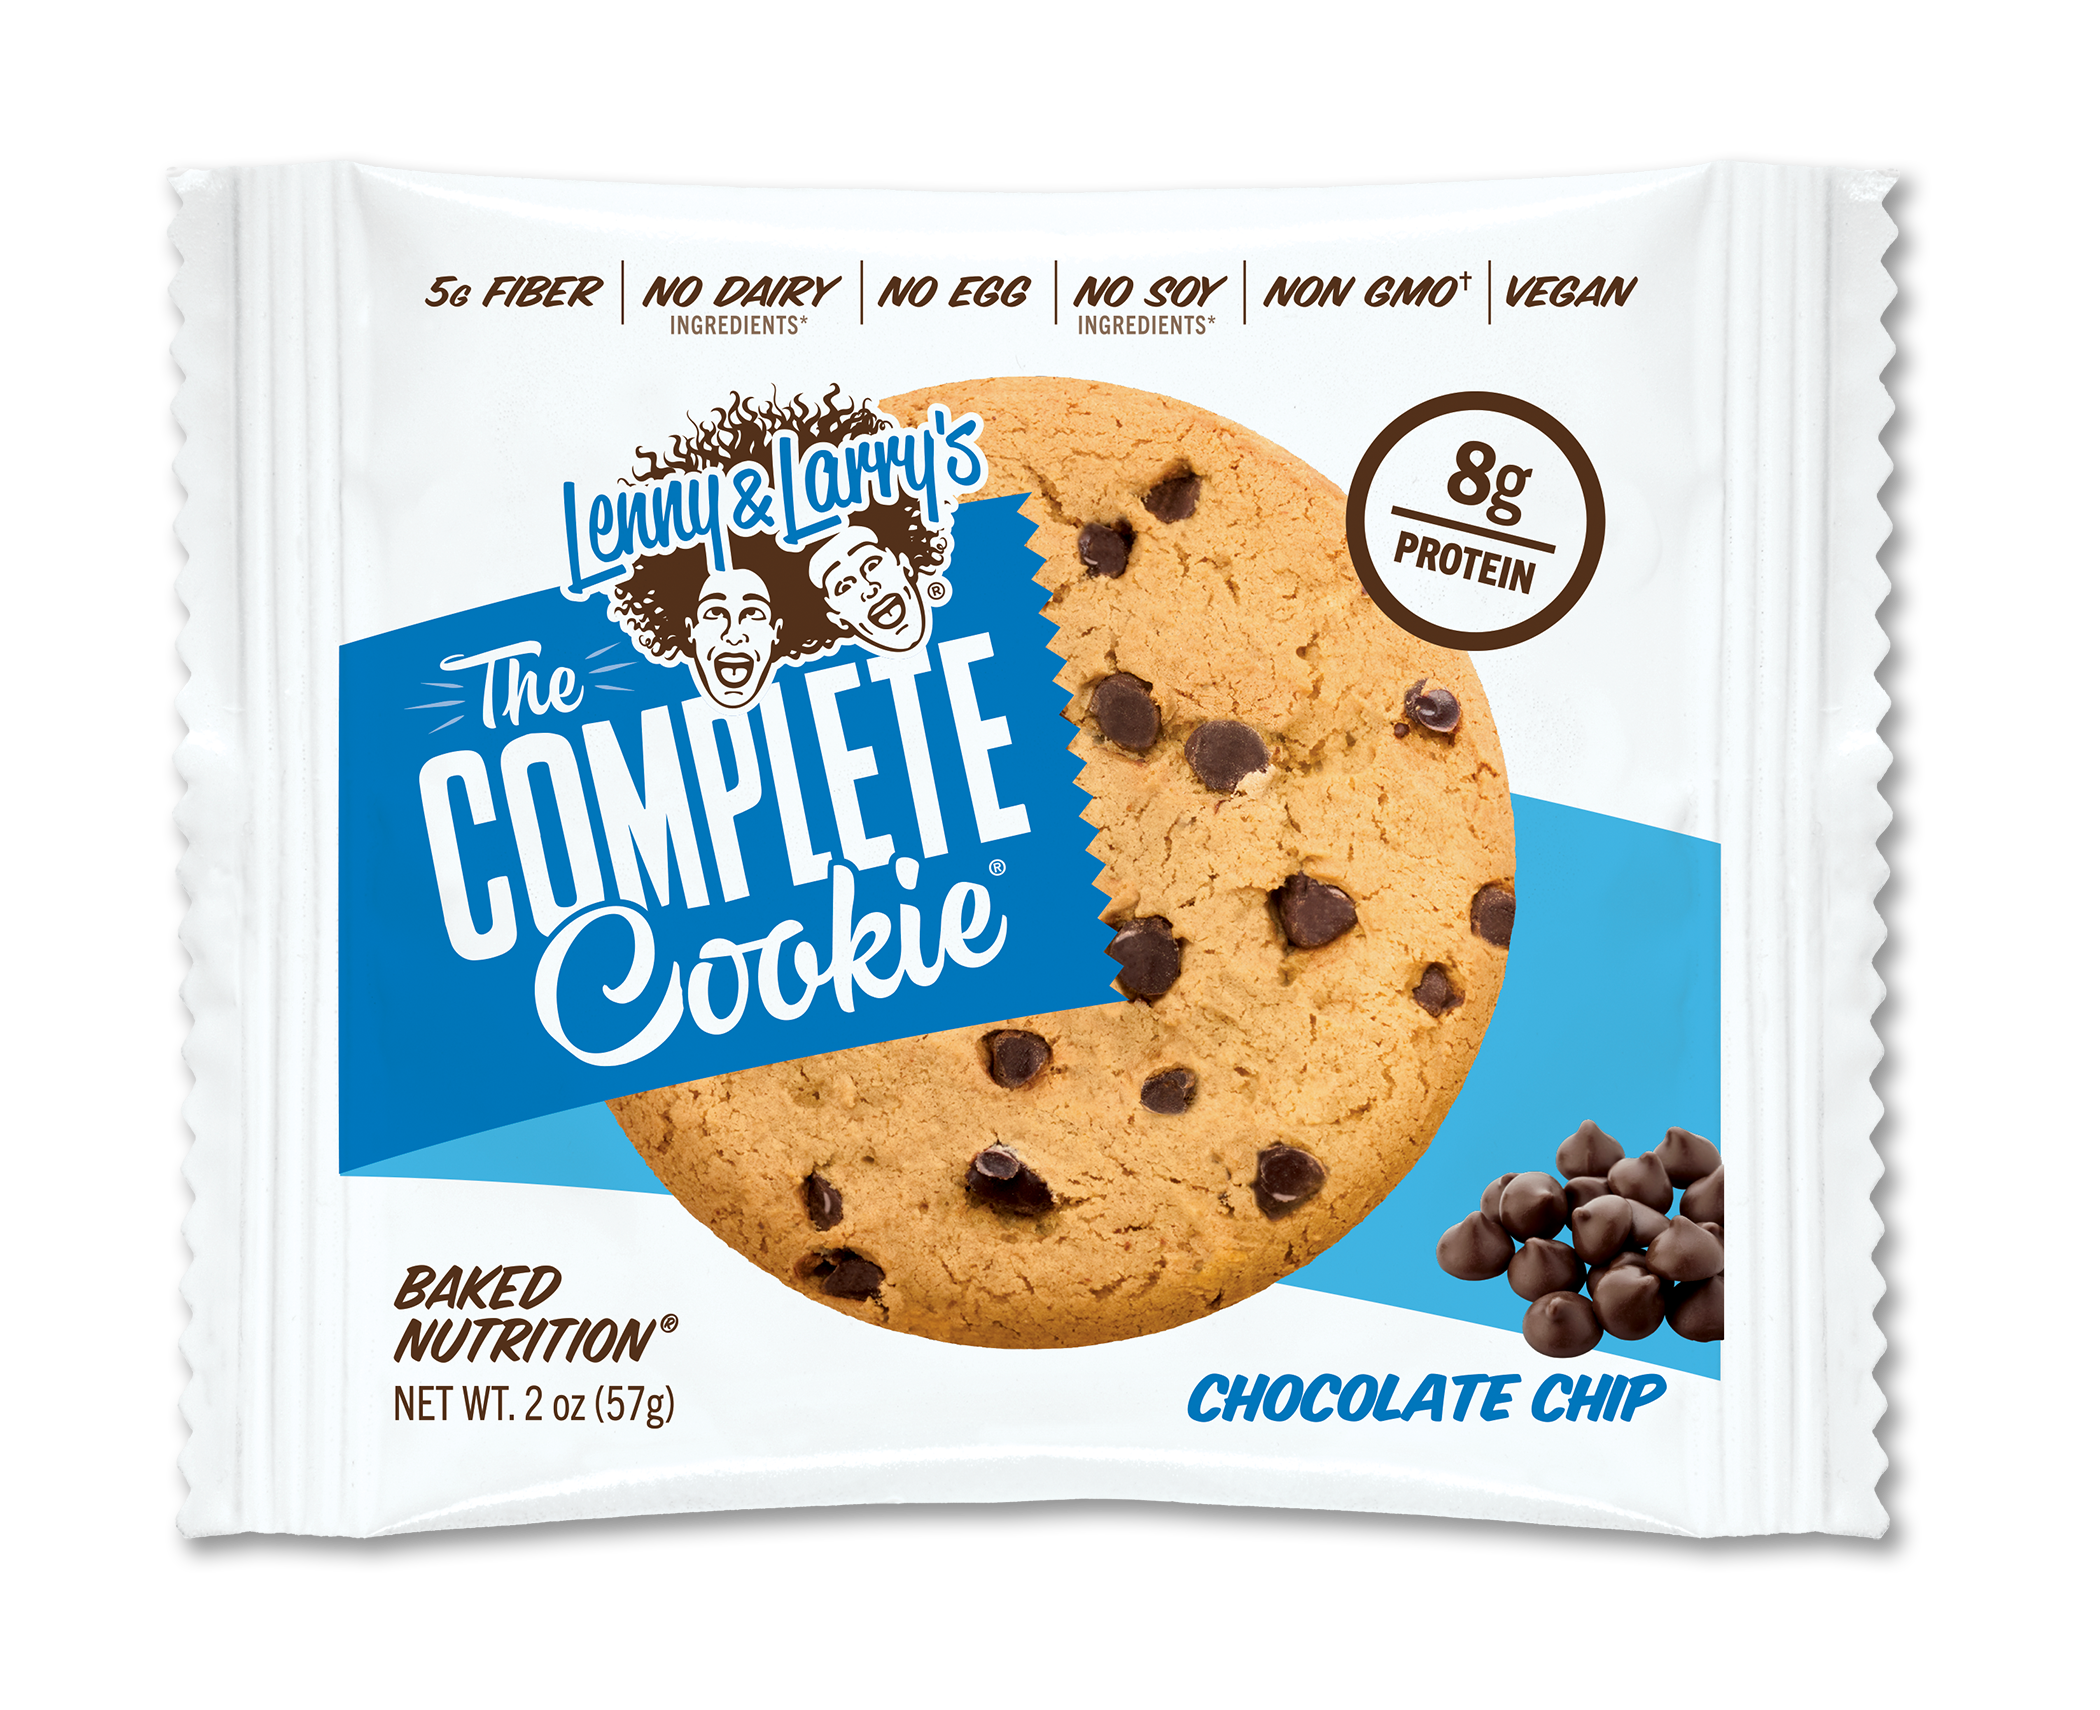 Lenny & Larry's The Complete Cookie, 16g of Protein, Chocolate Chip, 4 Oz, 1 Ct